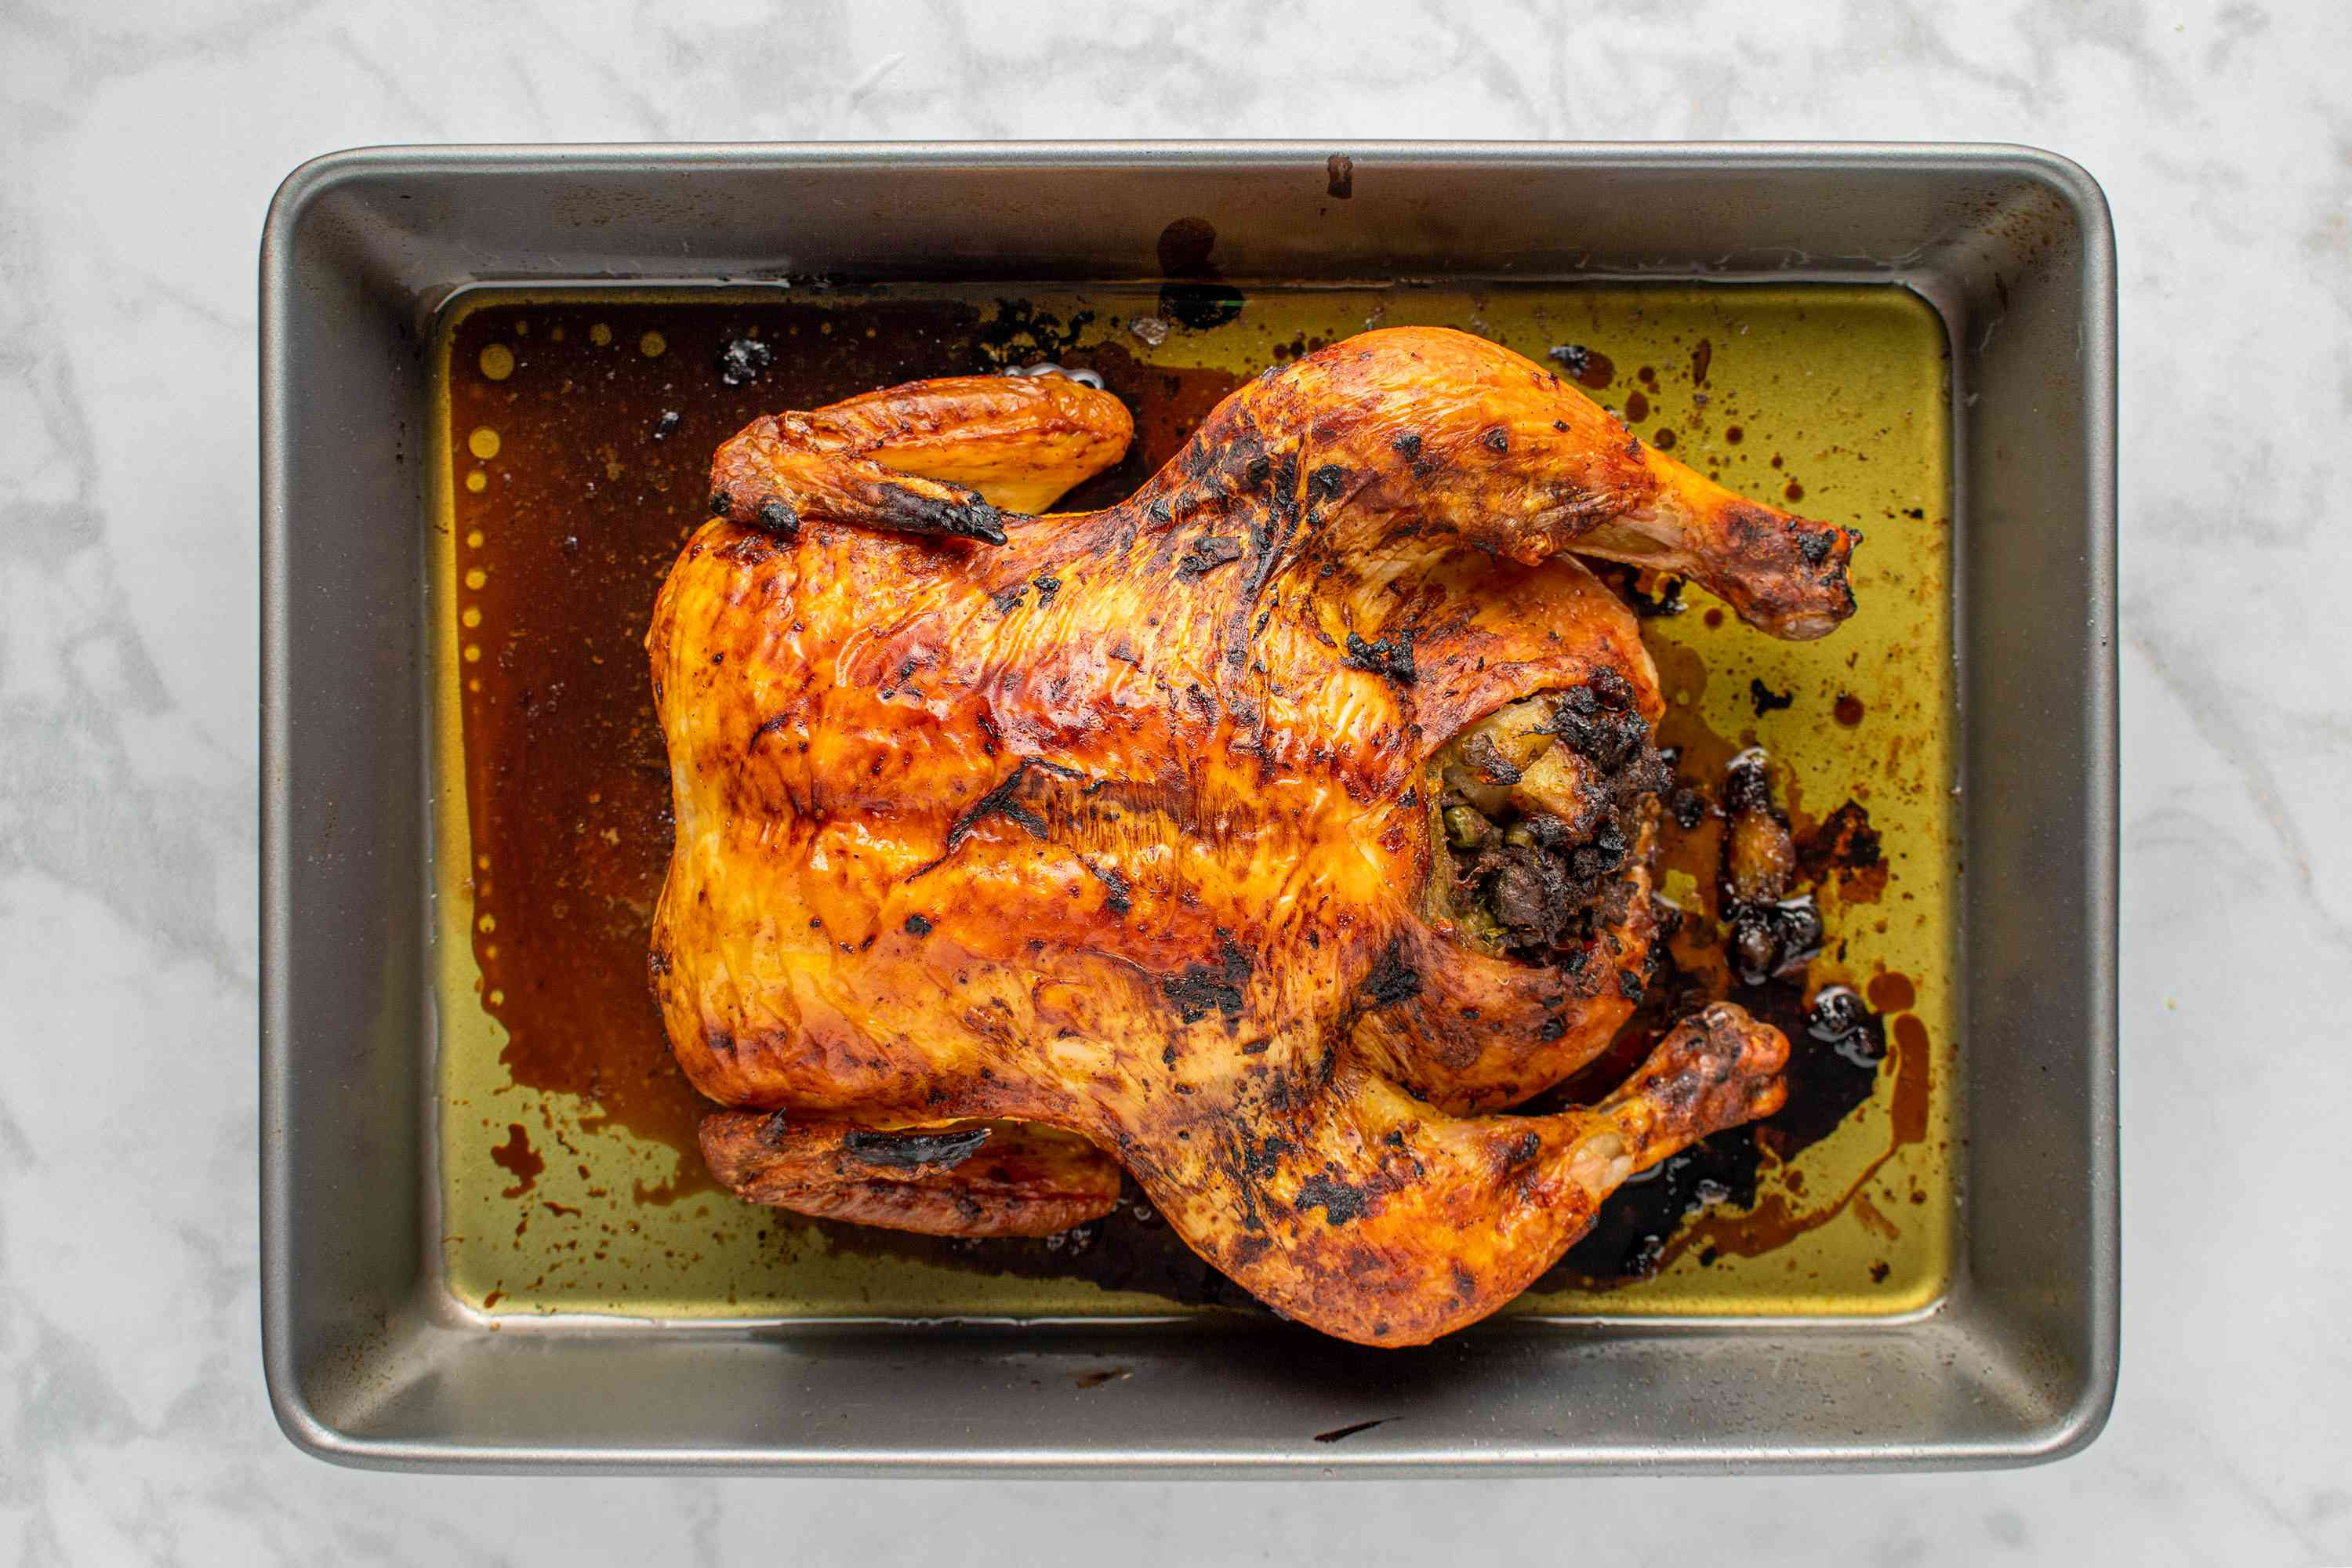 Indian-Style Stuffed Roast Chicken in a baking dish